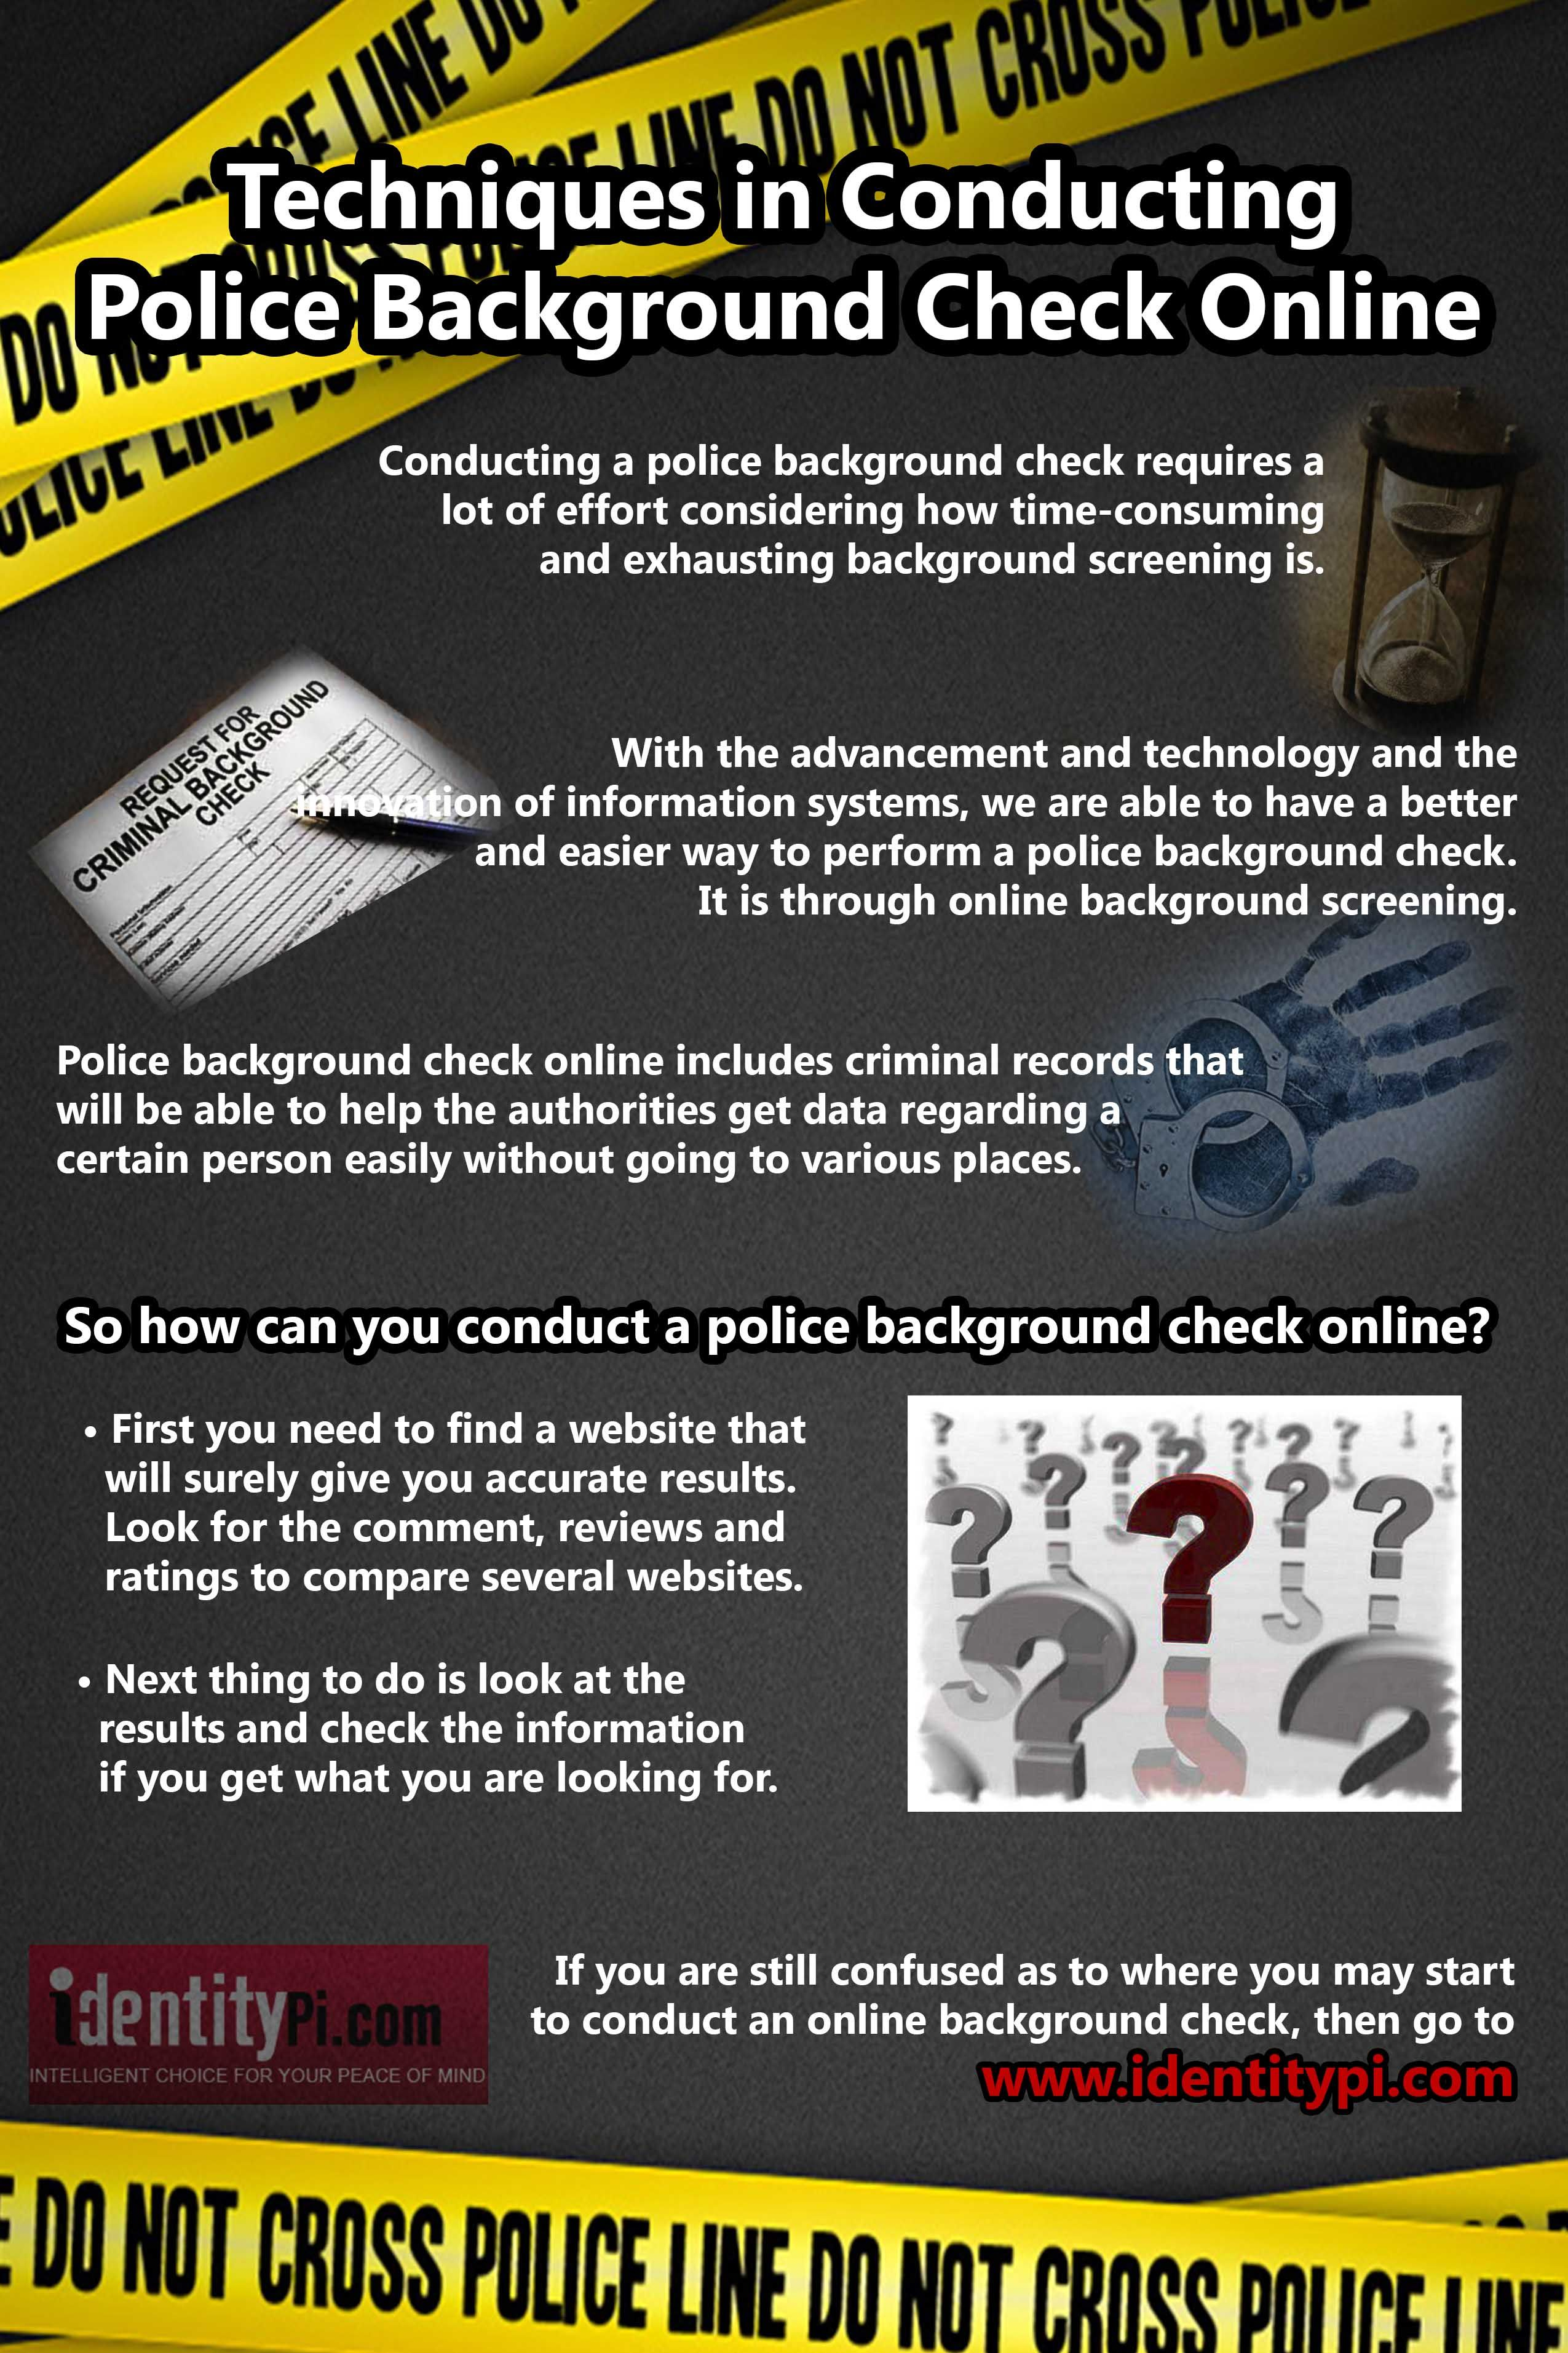 Pin by Identity PI on Background Checks and Criminal Records